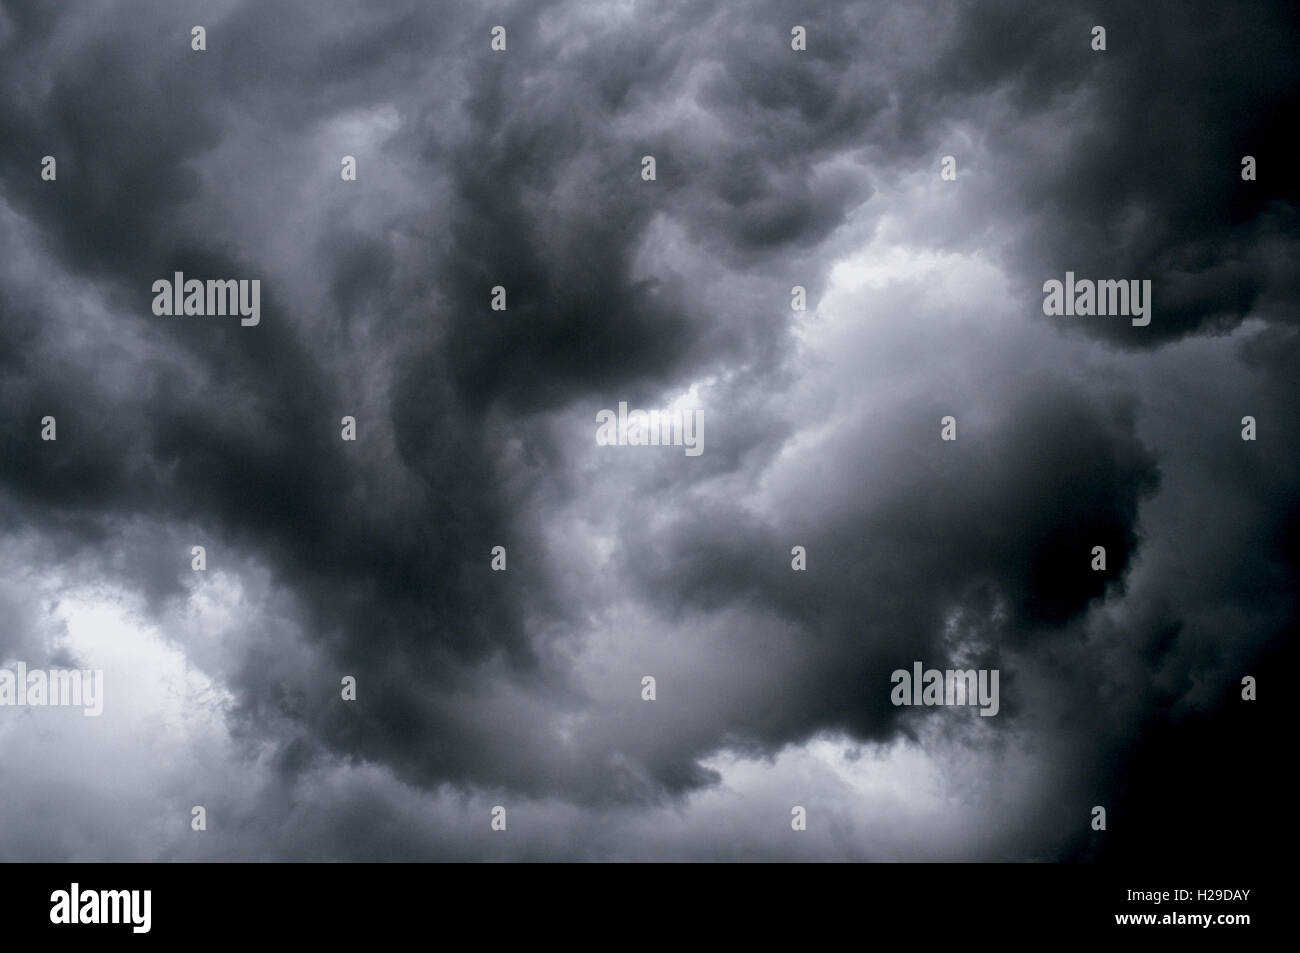 Angry Swirling Sky Showing Storm Rotation - Stock Image